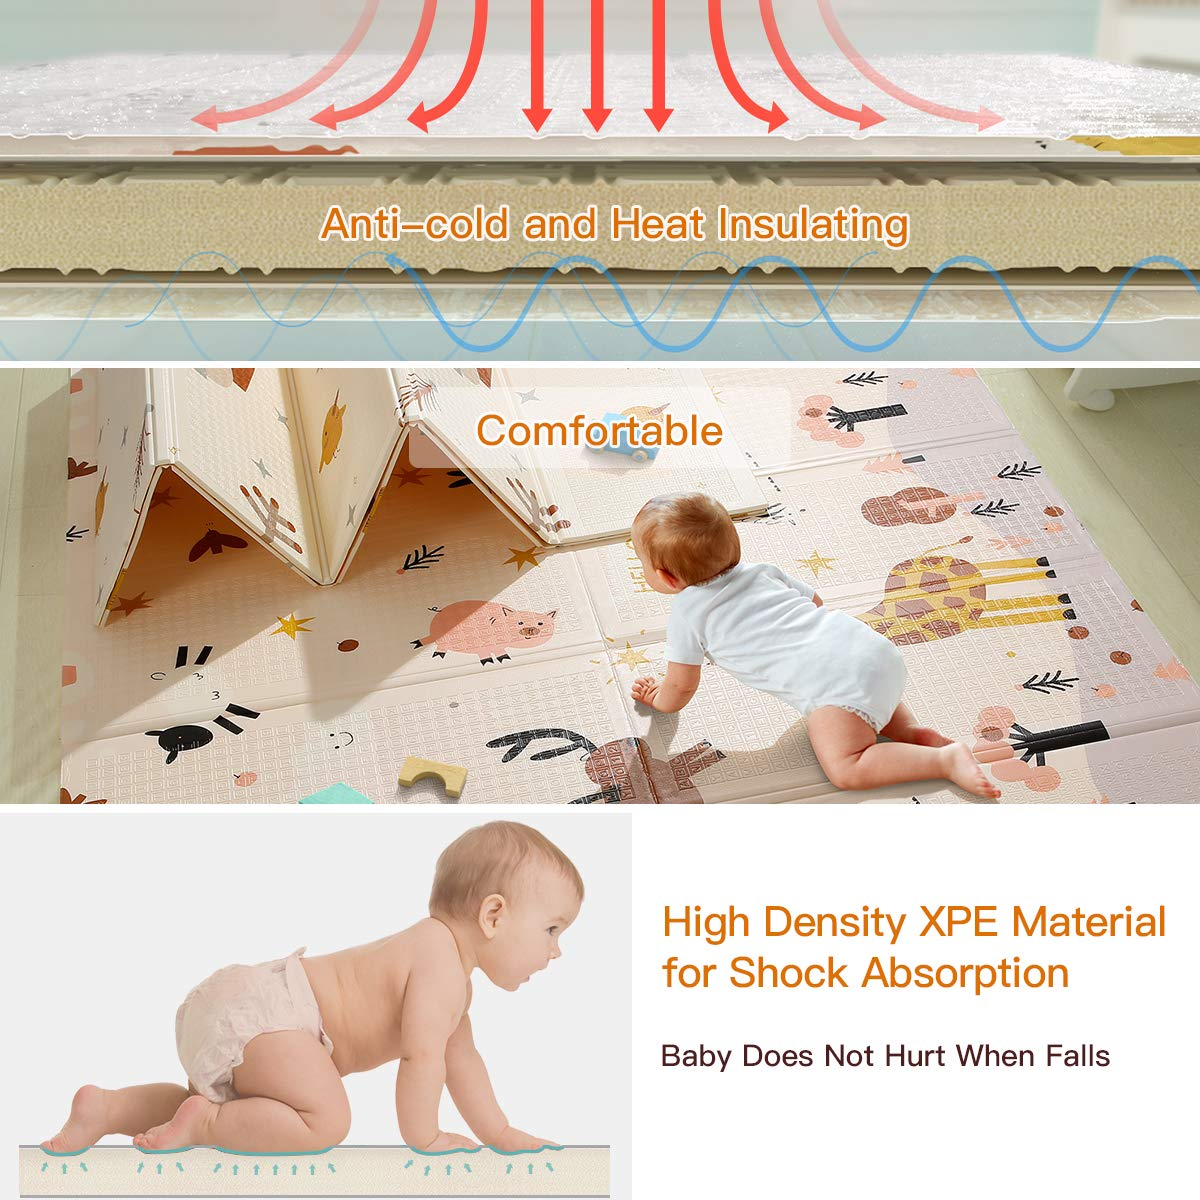 77x70x0.6 inch Toddlers Indoor or Outdoor Use Kids Baby Play Mat Anti-Slip Folding Puzzle Mat Playmat for Infants Extra Large Baby Crawling Mat Portable Waterproof Non Toxic Soft Foam